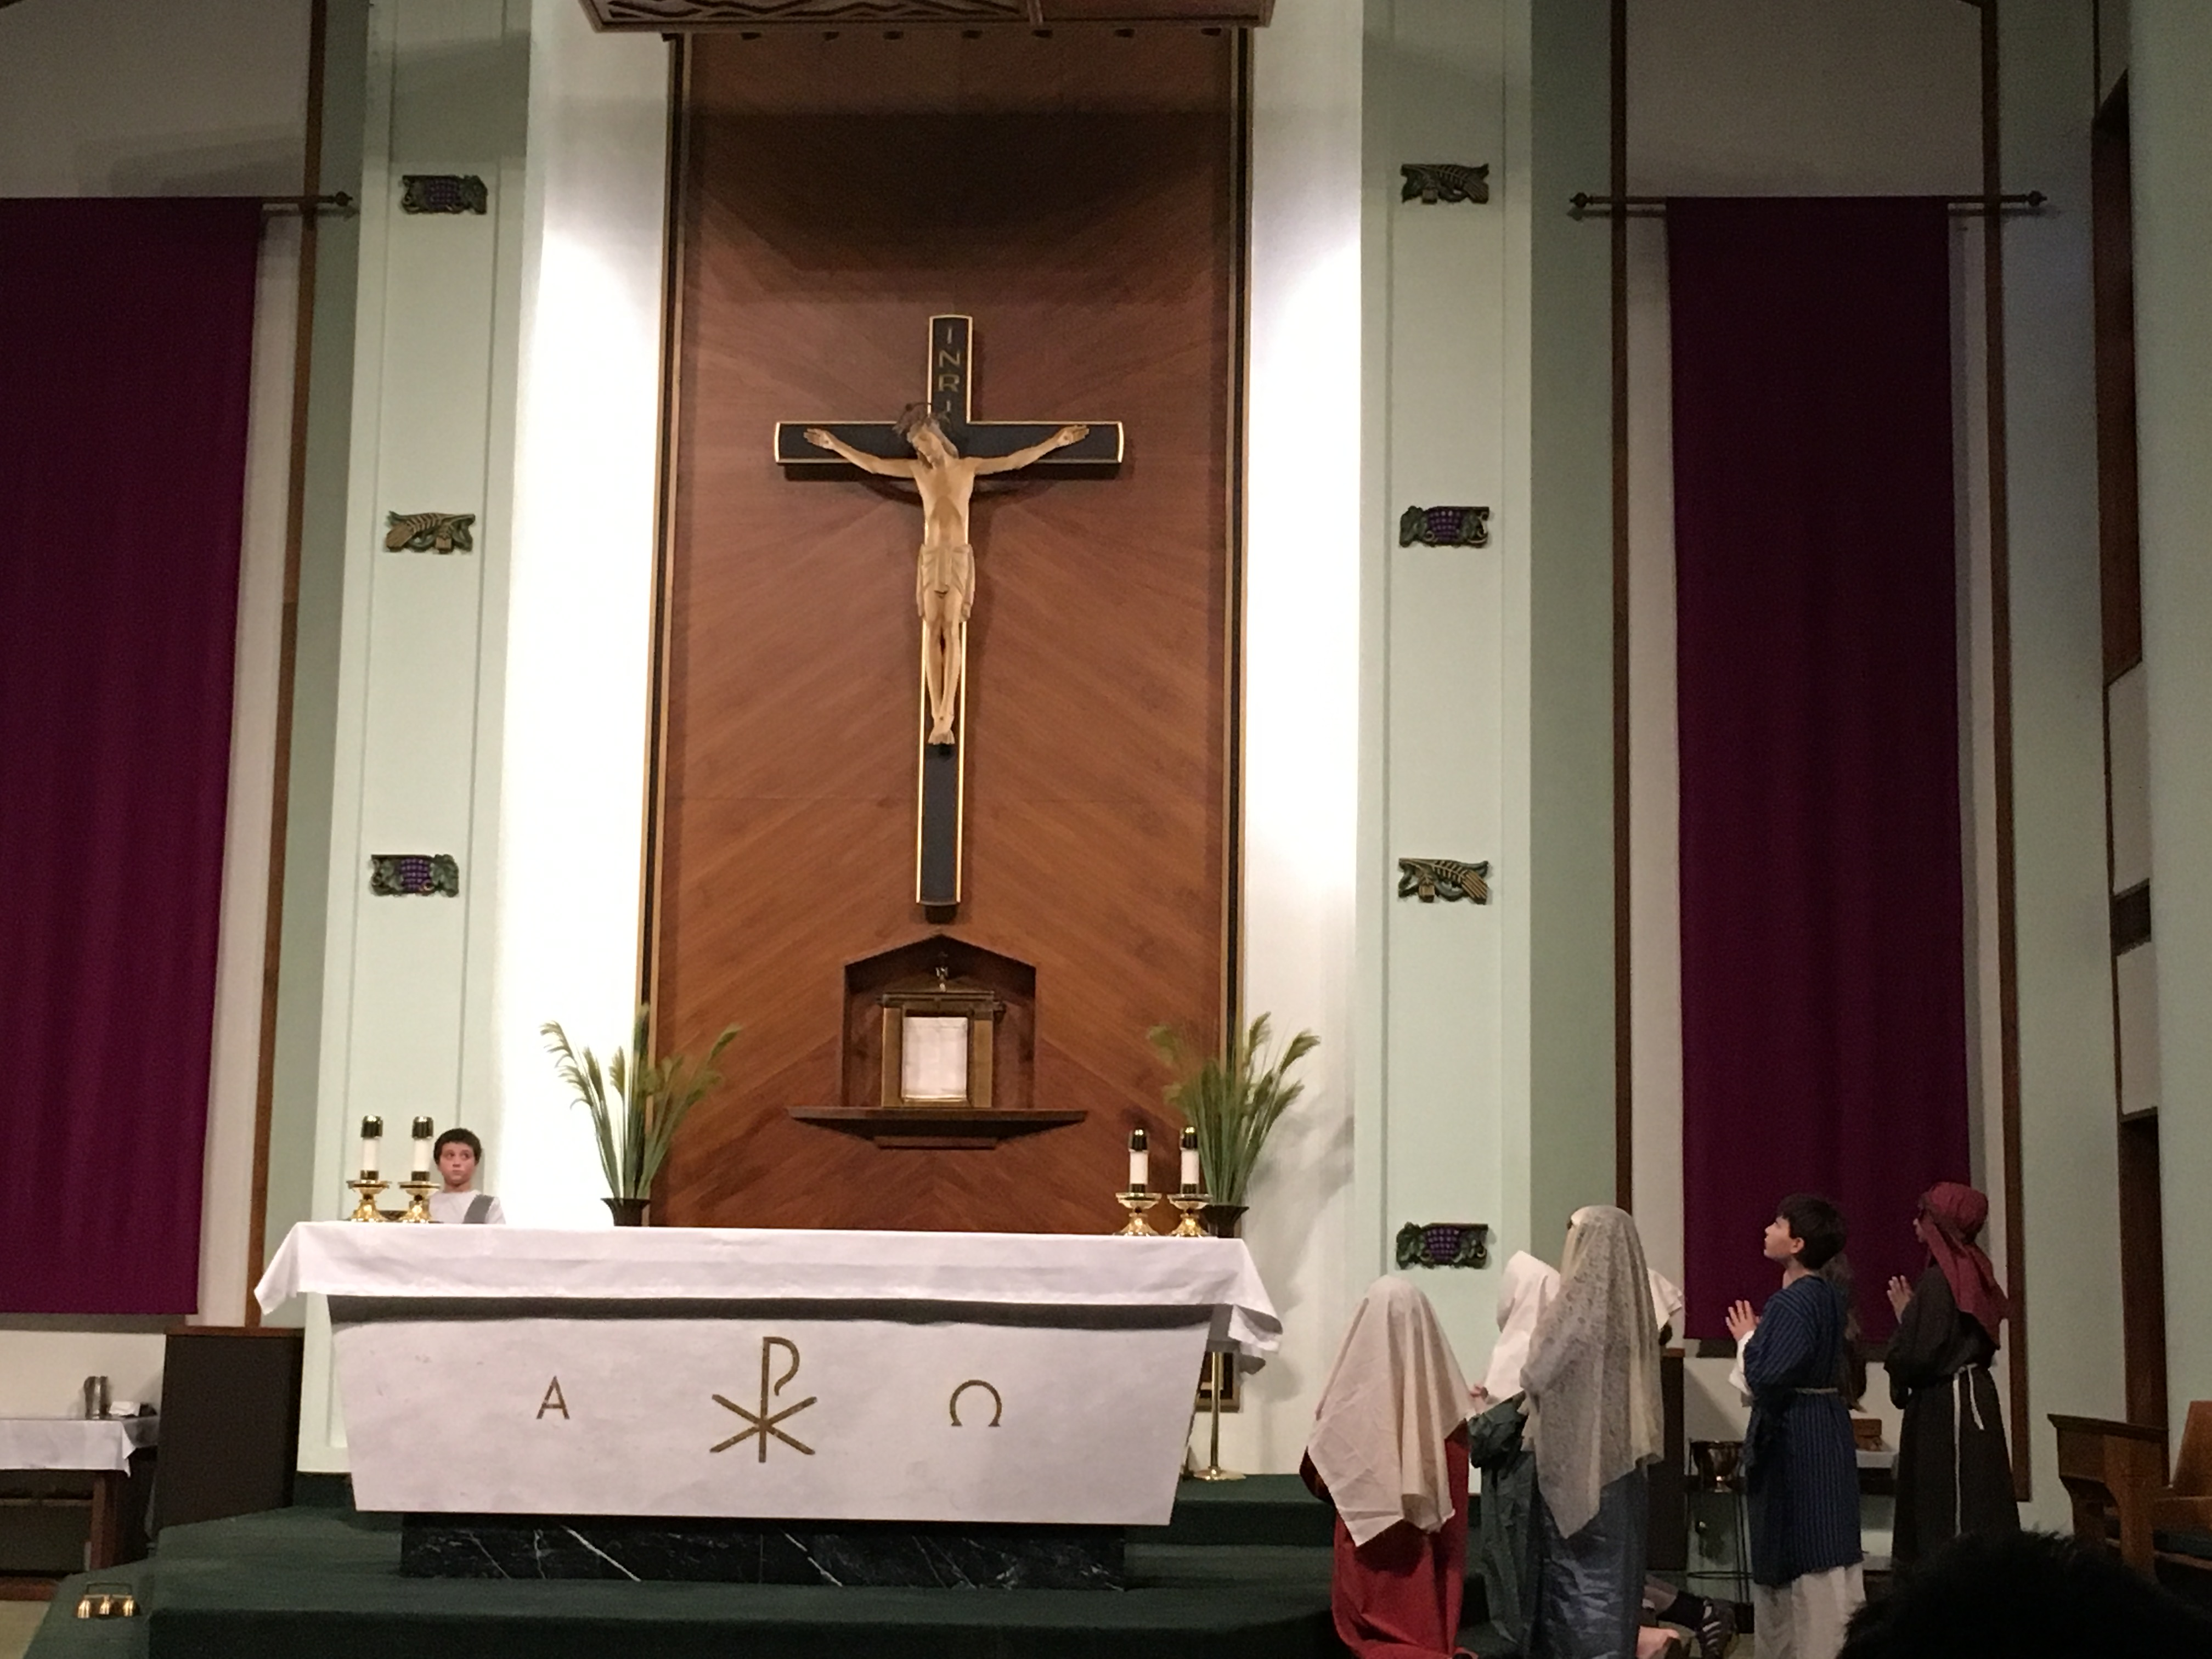 new providence catholic singles A social organization for single catholic professionals catholic singles of greater washington (also known as cac of washington, dc) is an organization for single catholics who are free to marry in the catholic church.